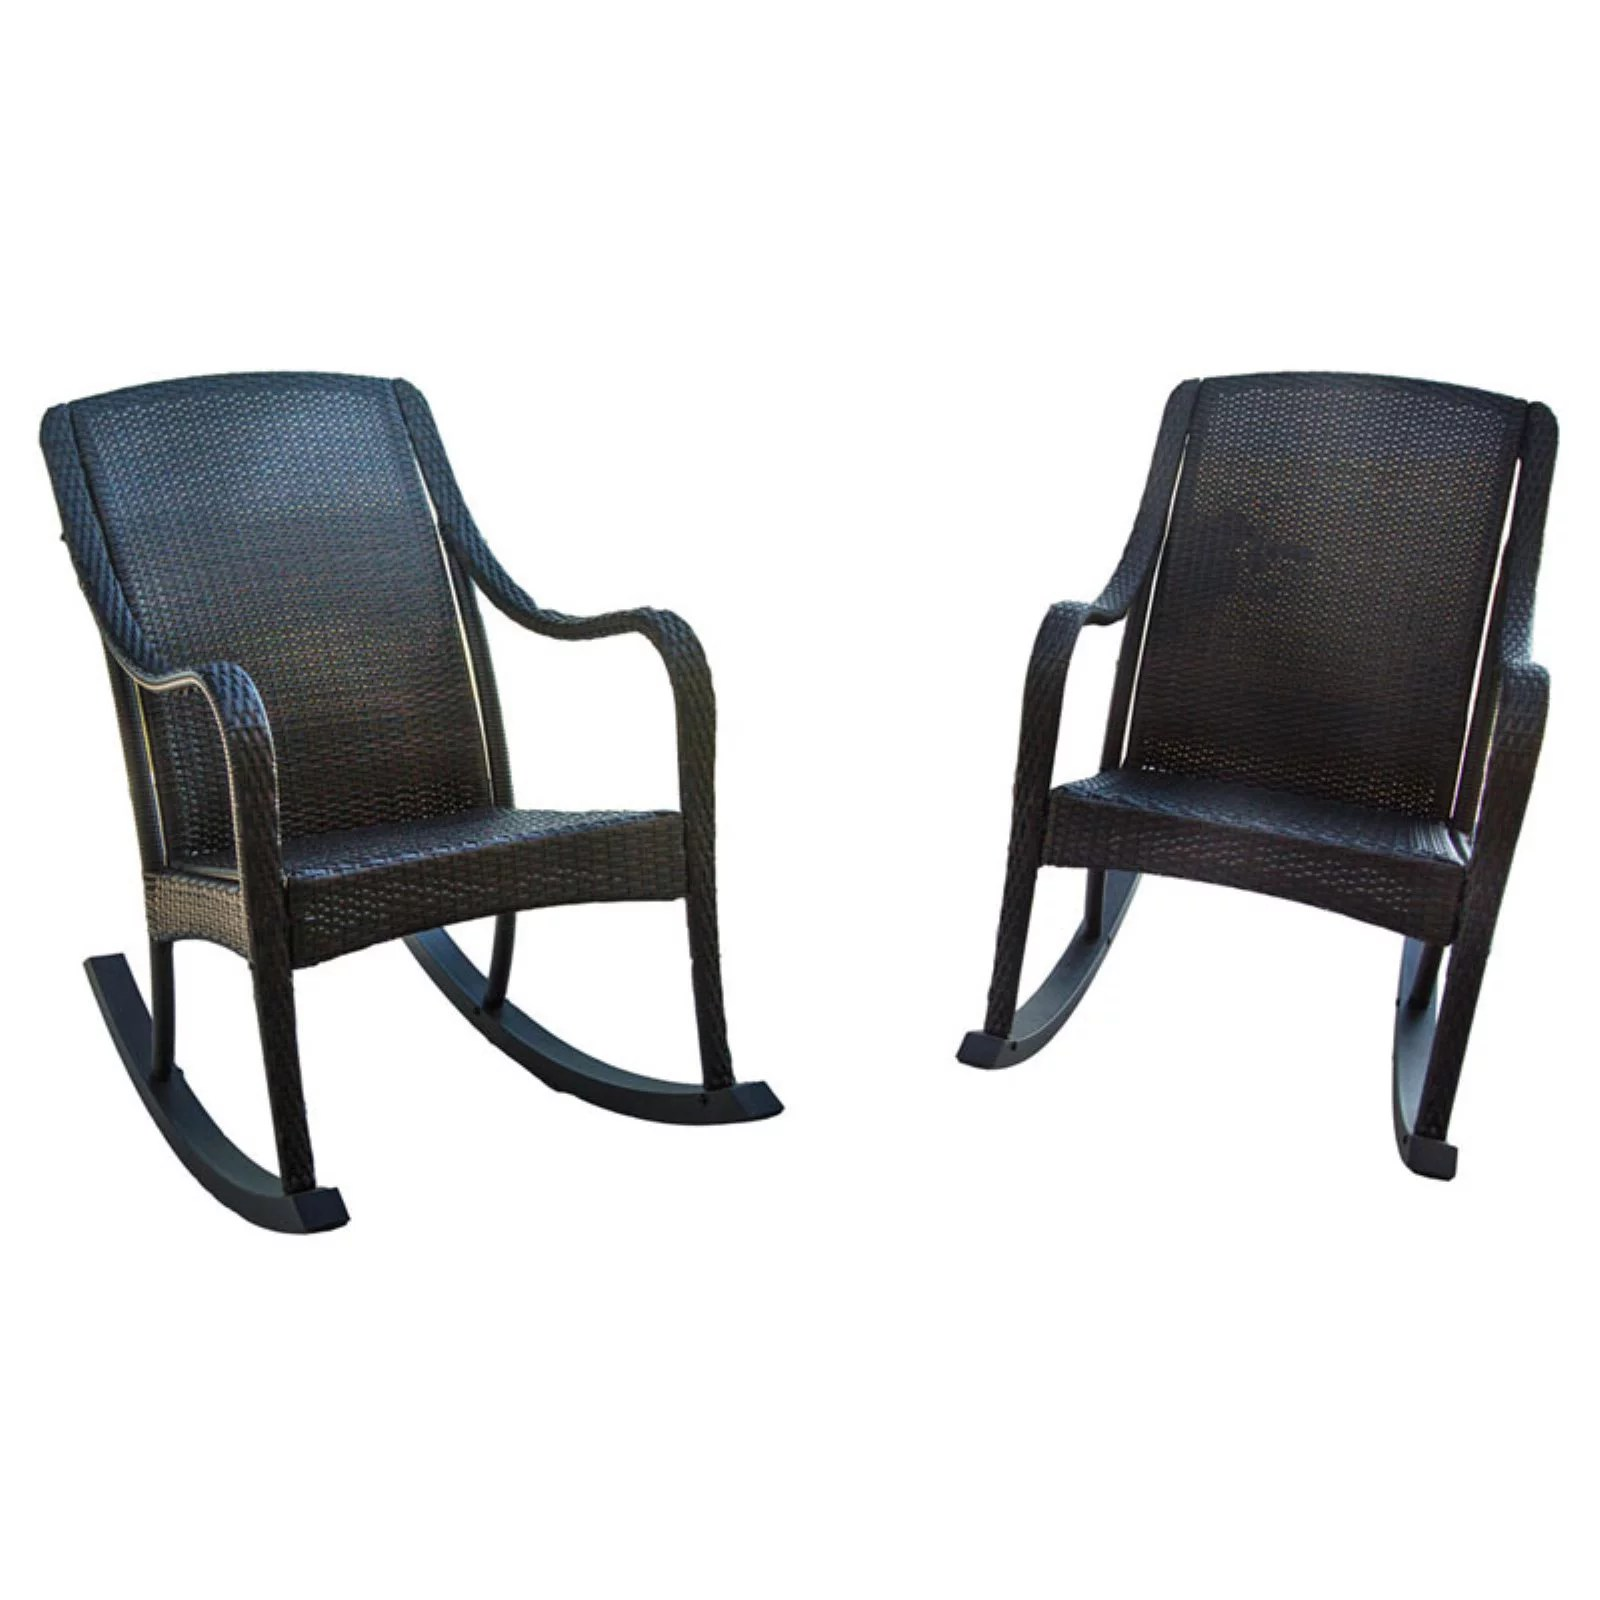 Wicker Rocking Chair Hanover Orleans All Weather Wicker Rocking Chairs Set Of 2